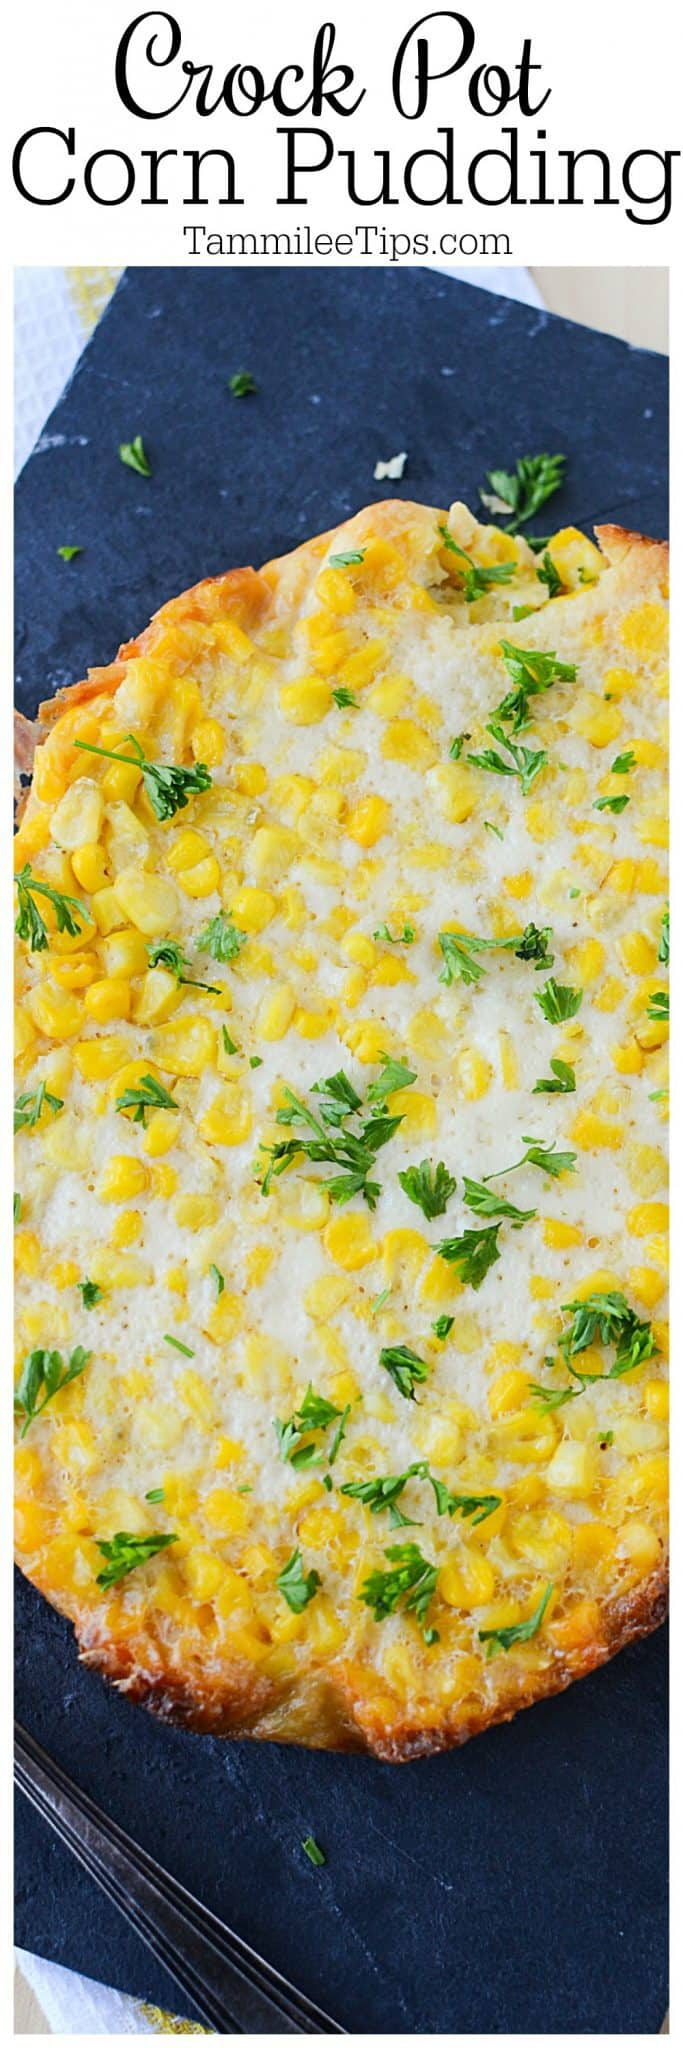 Slow Cooker Crock Pot Corn Pudding Recipe also called Corn Casserole is a great Thanksgiving or Christmas side dish. So easy to make and you don't have to stress over it. #CrockPot #slowcooker #thanksgiving #christmas